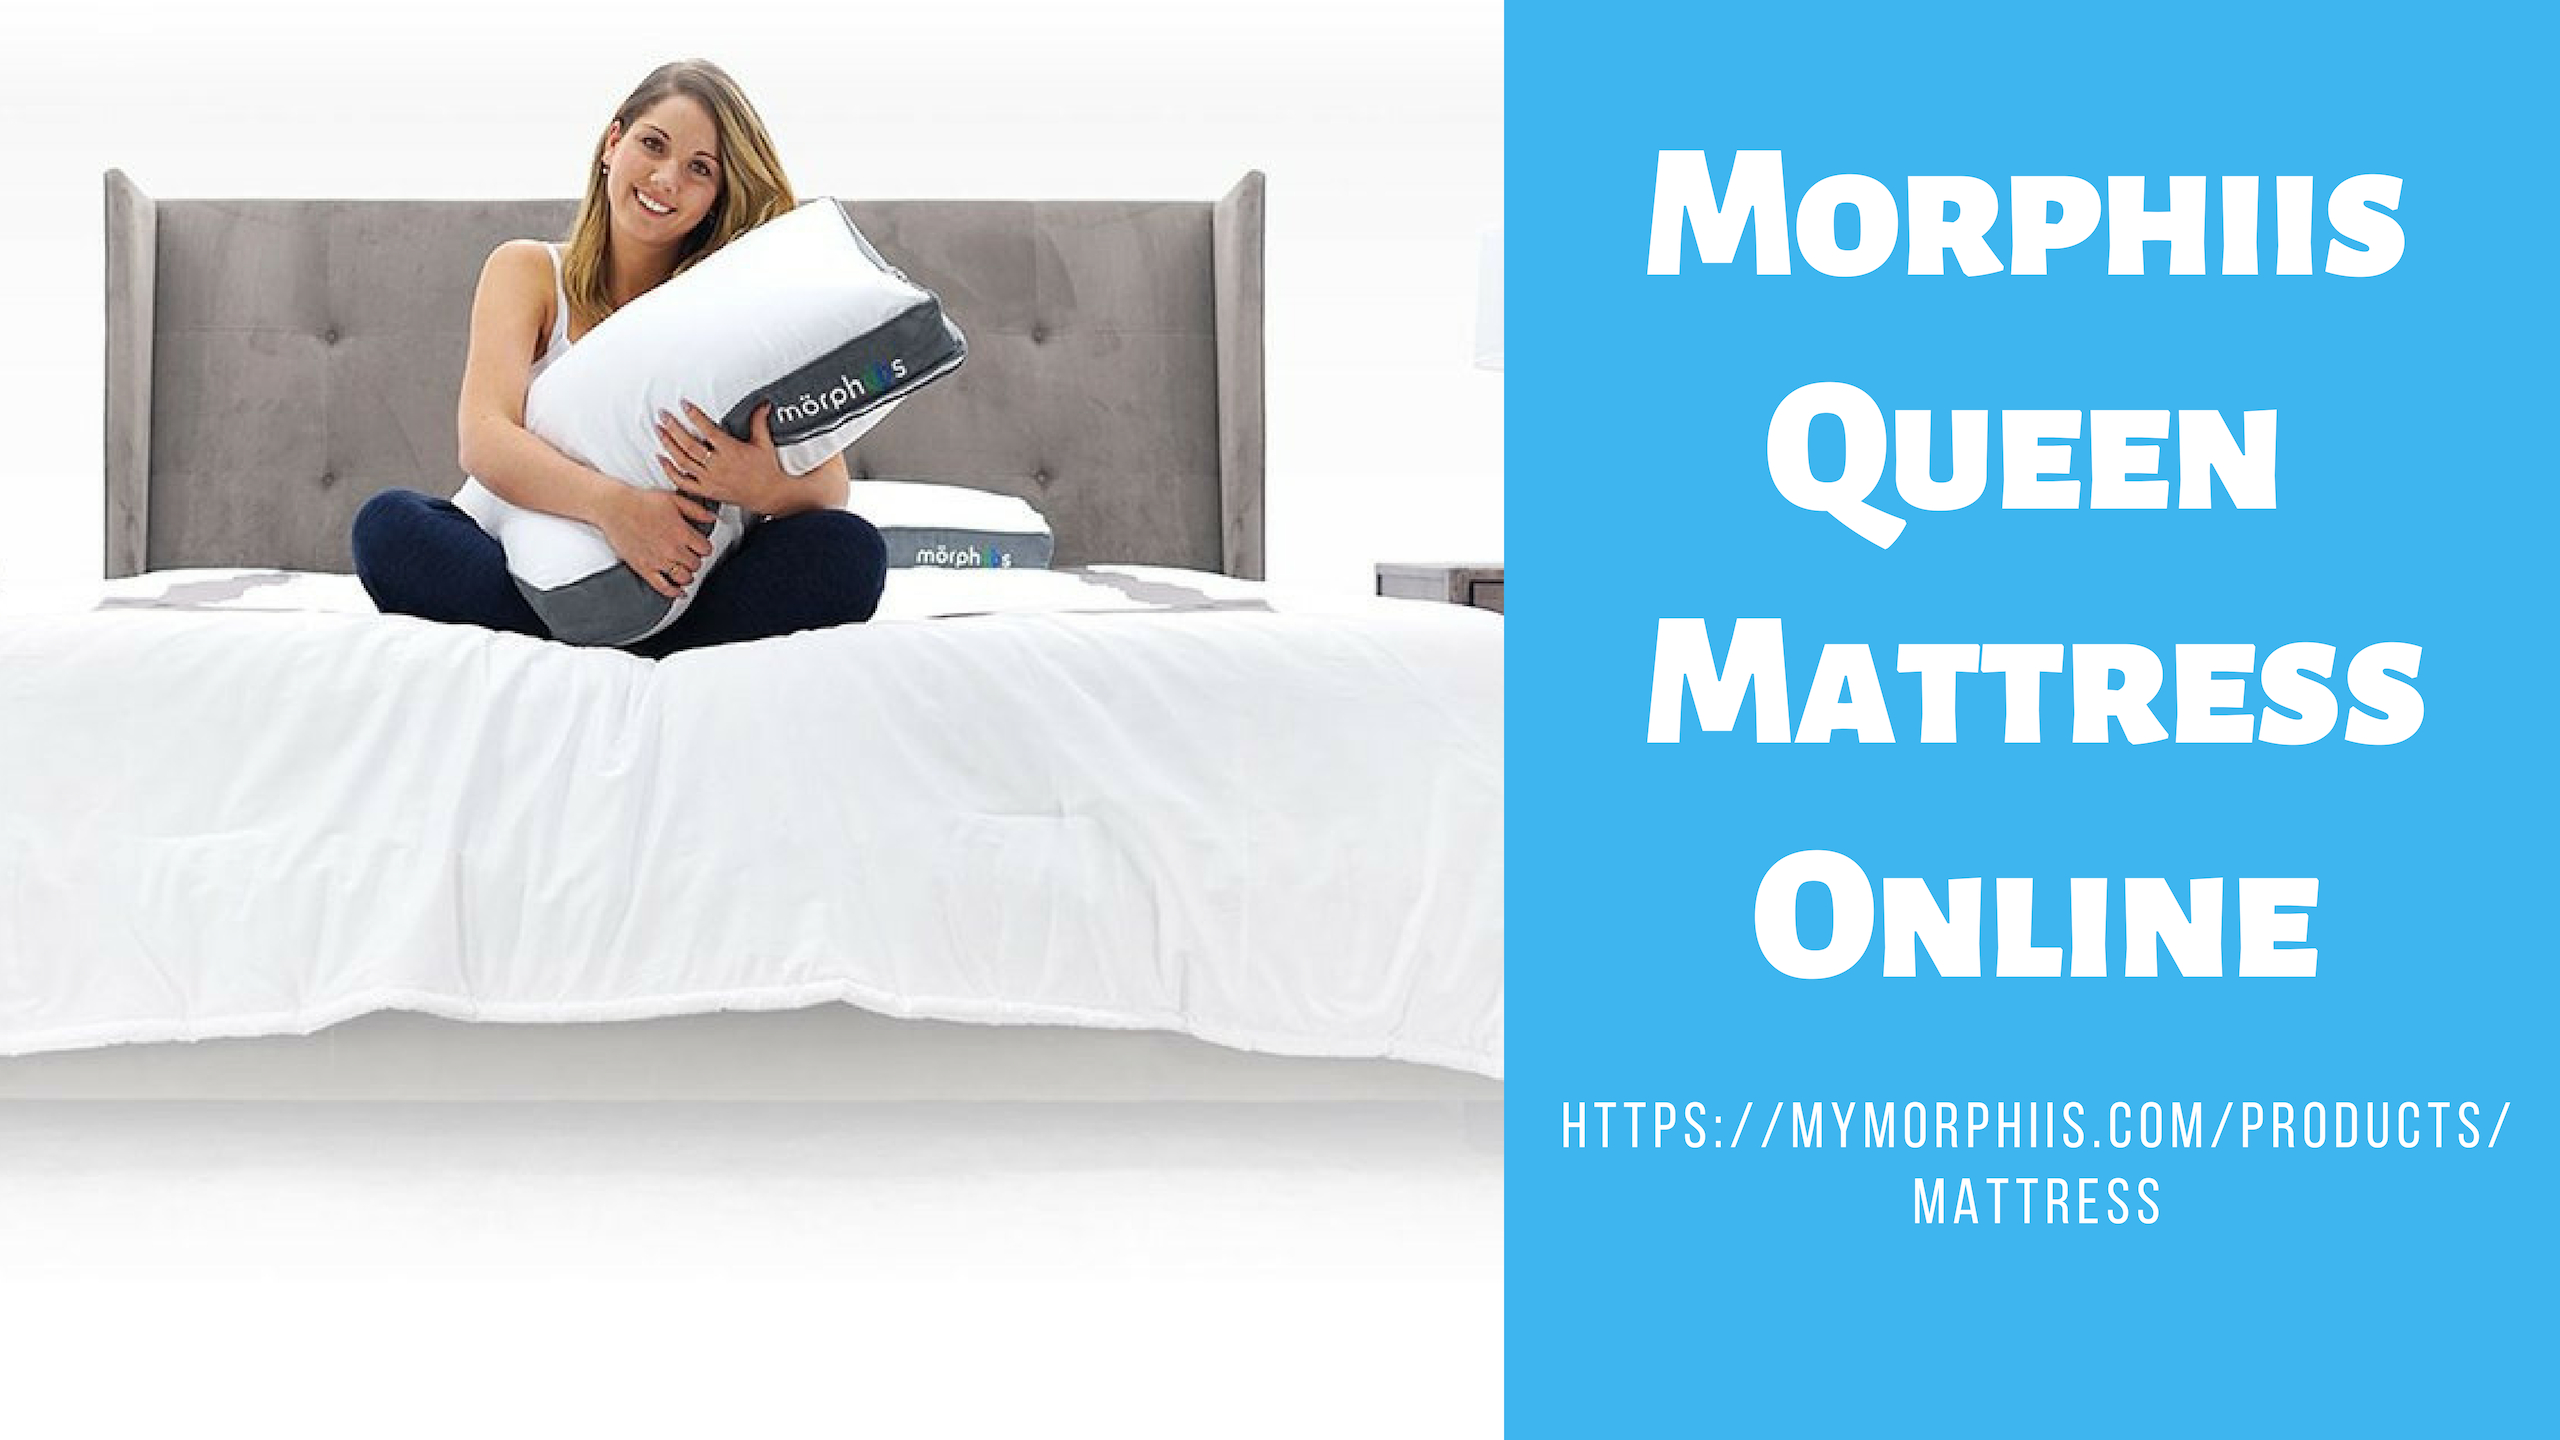 Morphiis Queen Mattress Online